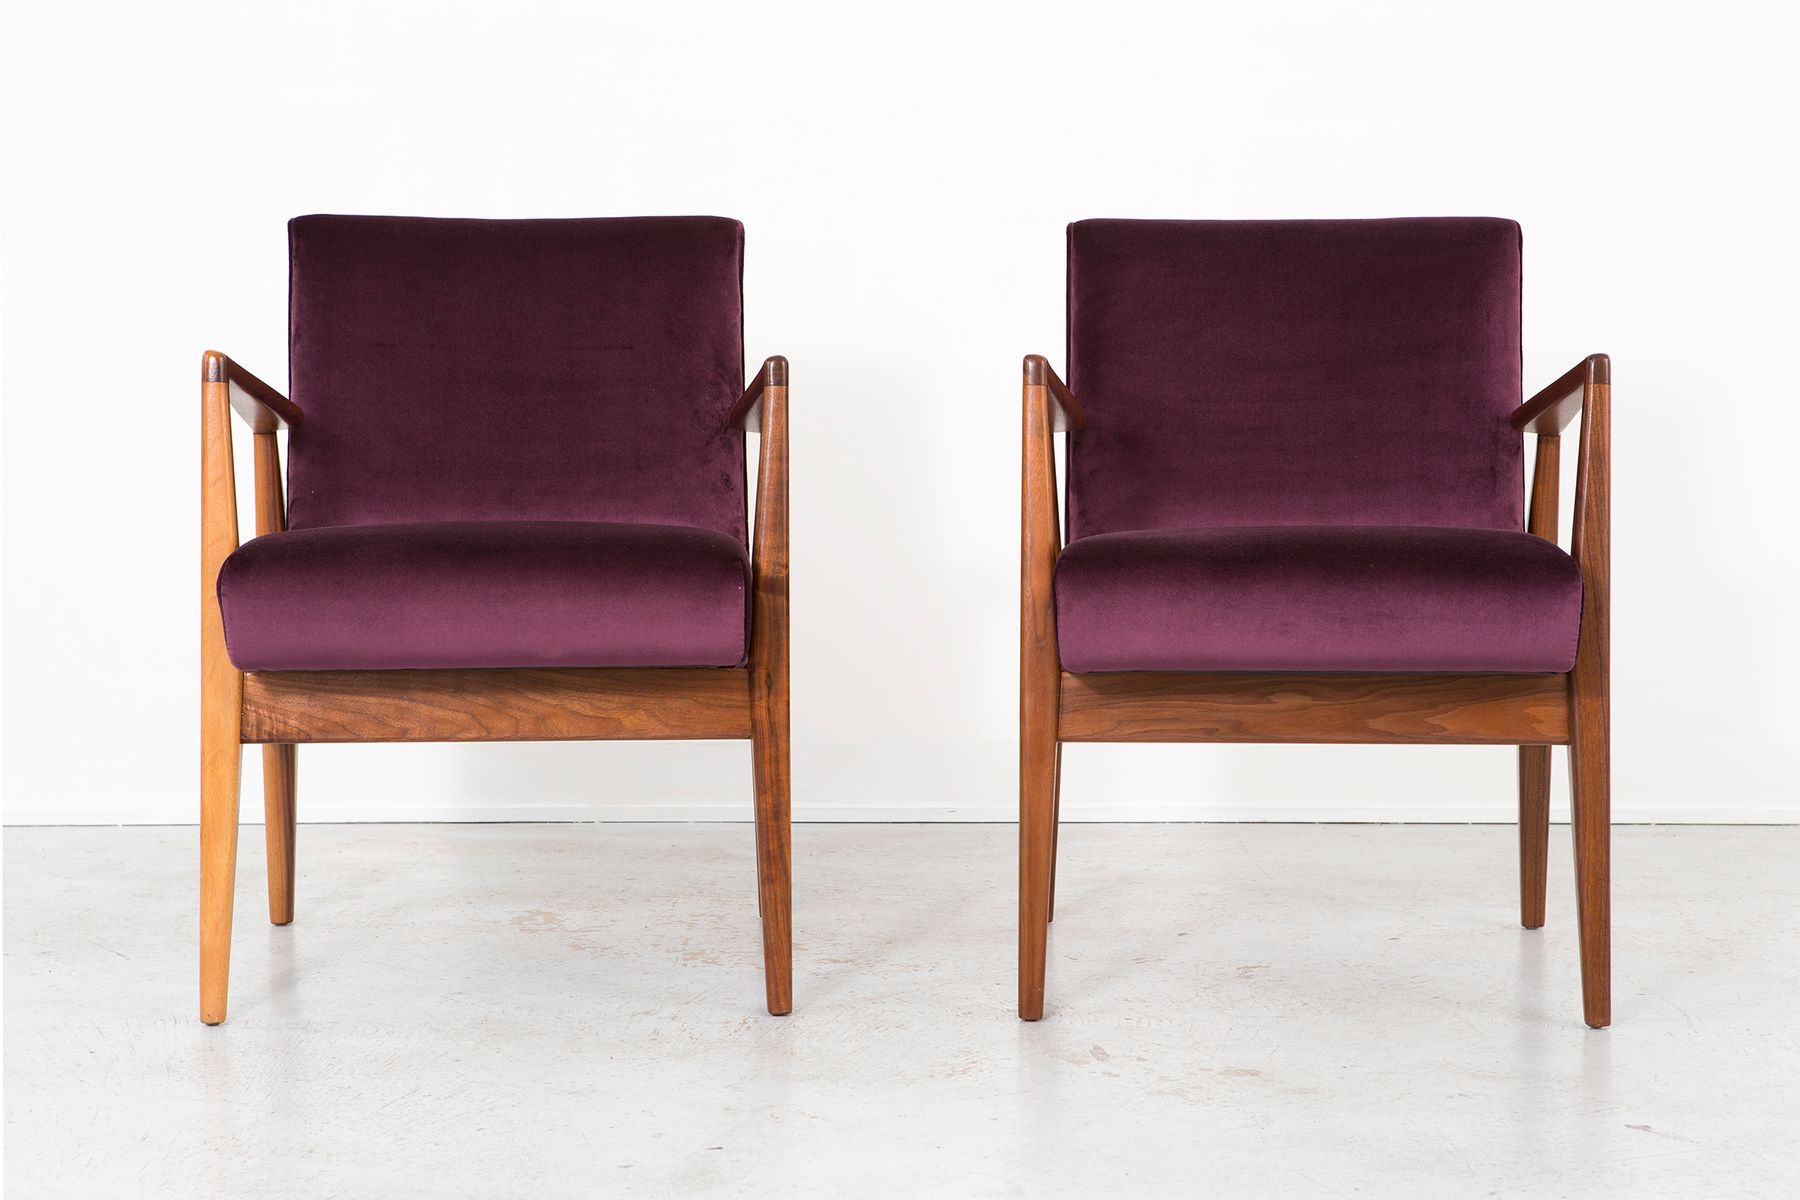 Jens Risom Side Chair Vintage Lounge Chairs By Jens Risom Set Of 2 For Sale At Pamono